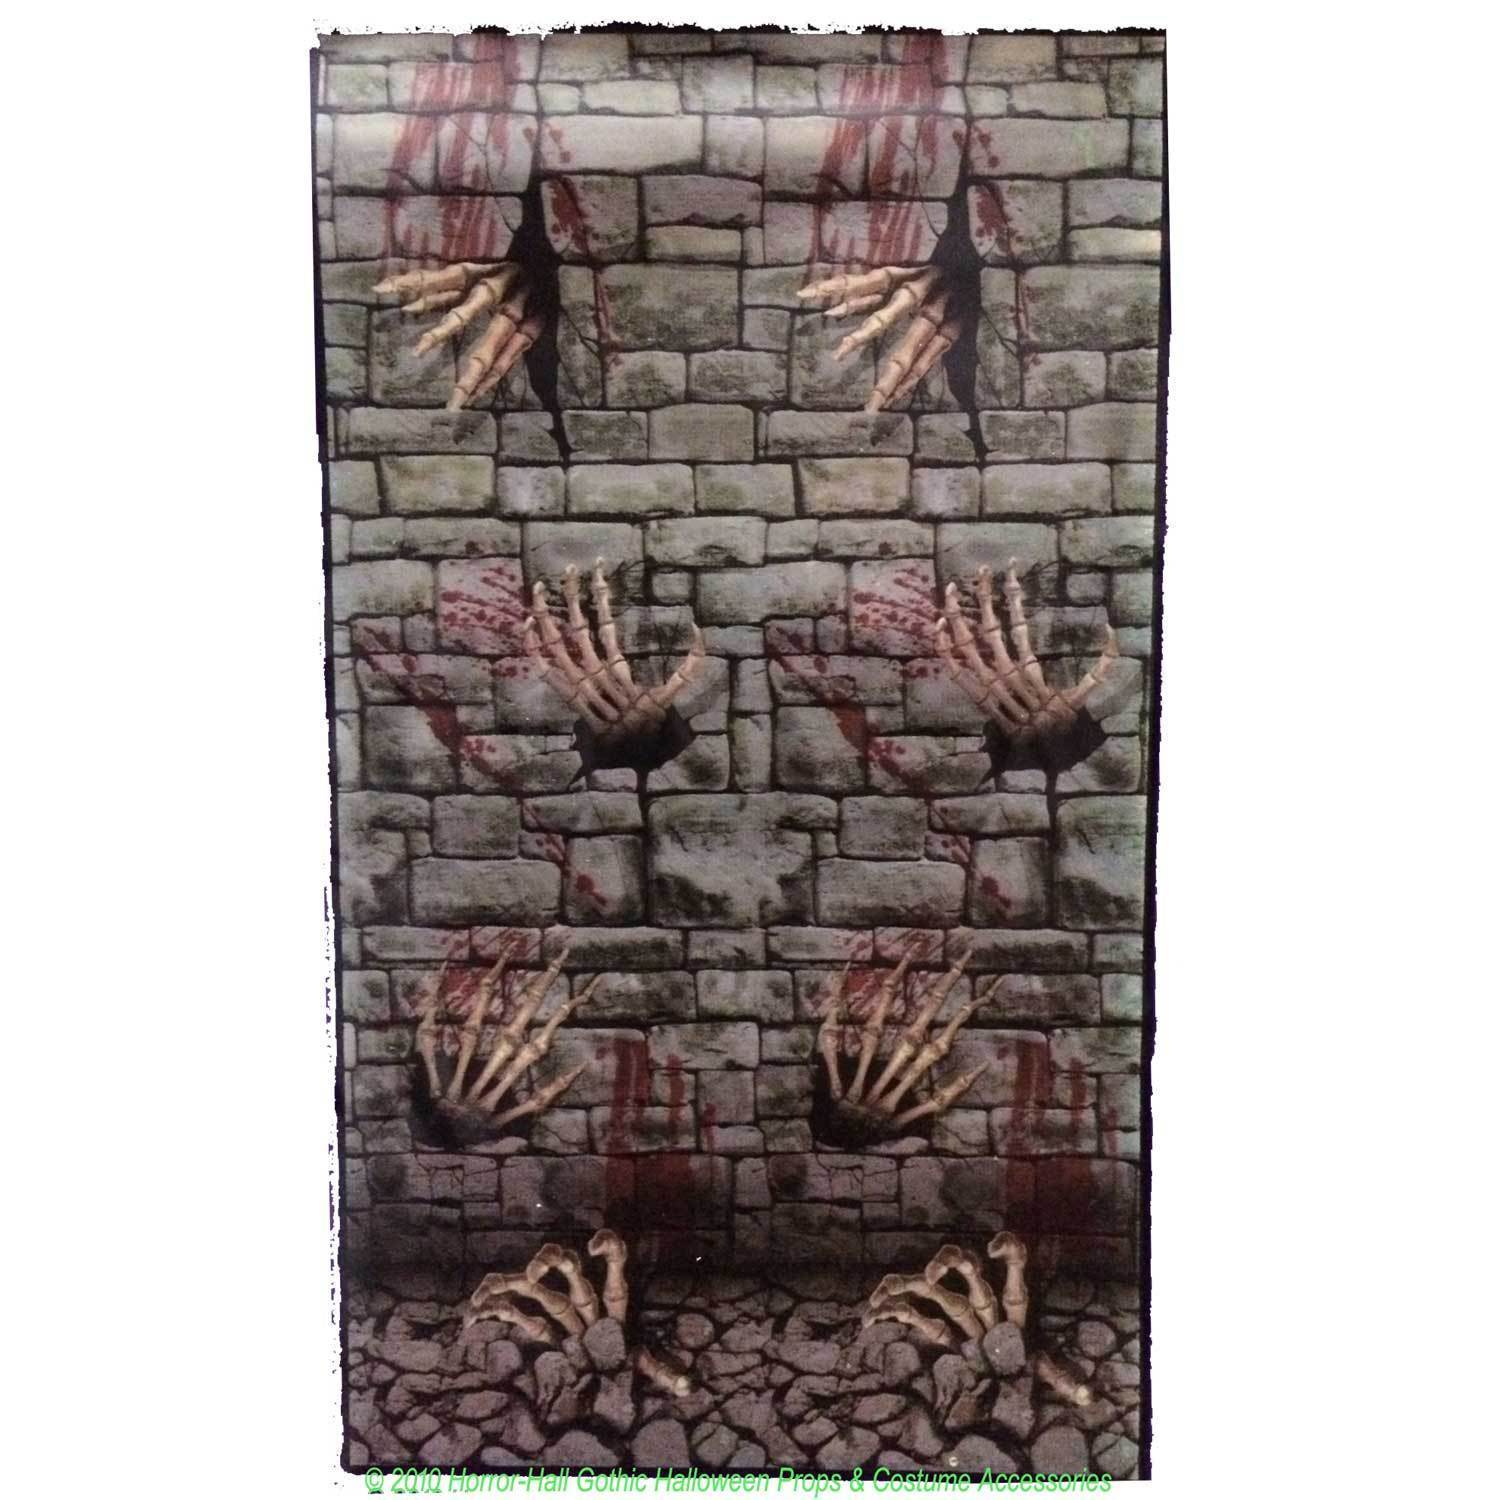 Gothic dungeon skeleton hands door cover stone wall poster - Poster decoratif mural ...